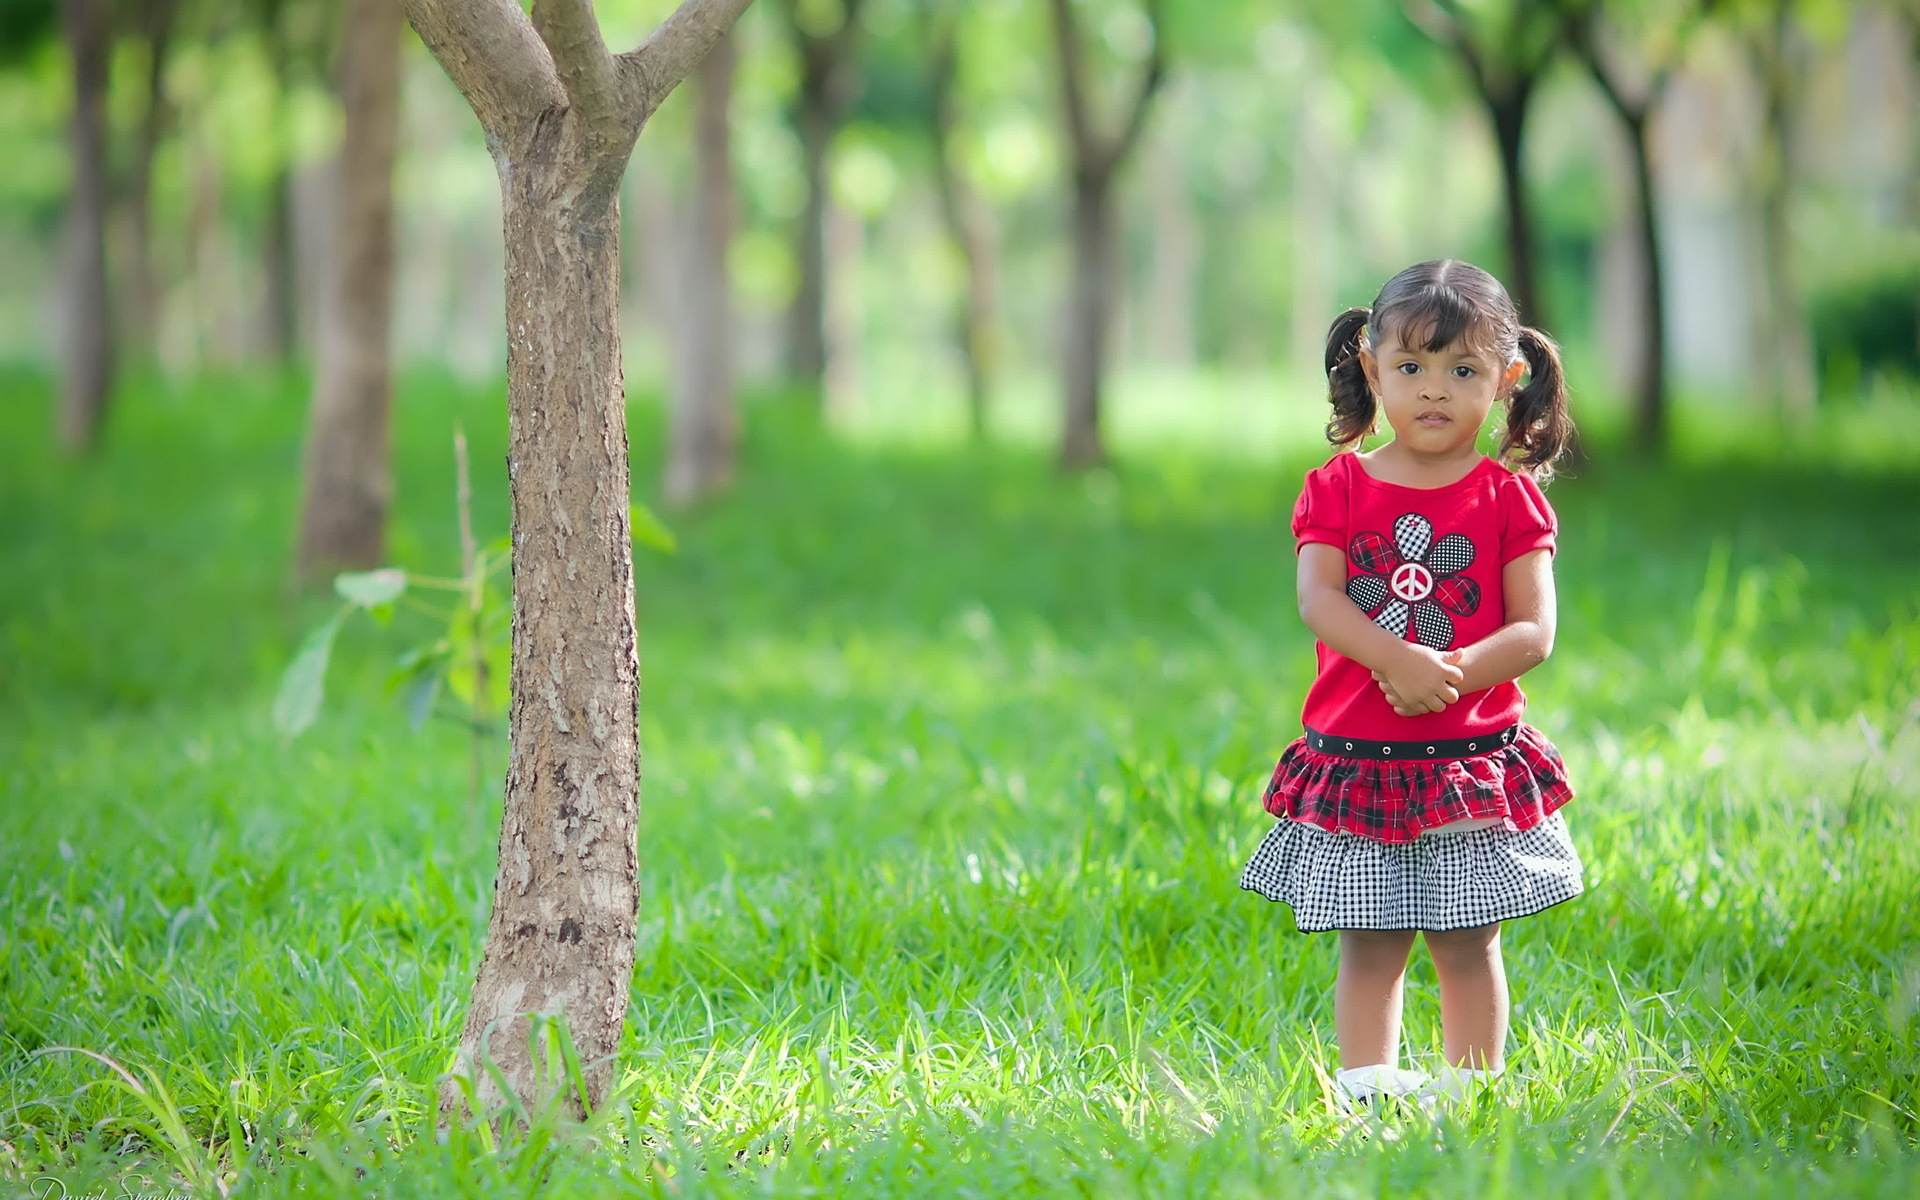 Little child Love Wallpaper : child Full HD Wallpaper and Background Image 1920x1200 ID:280917